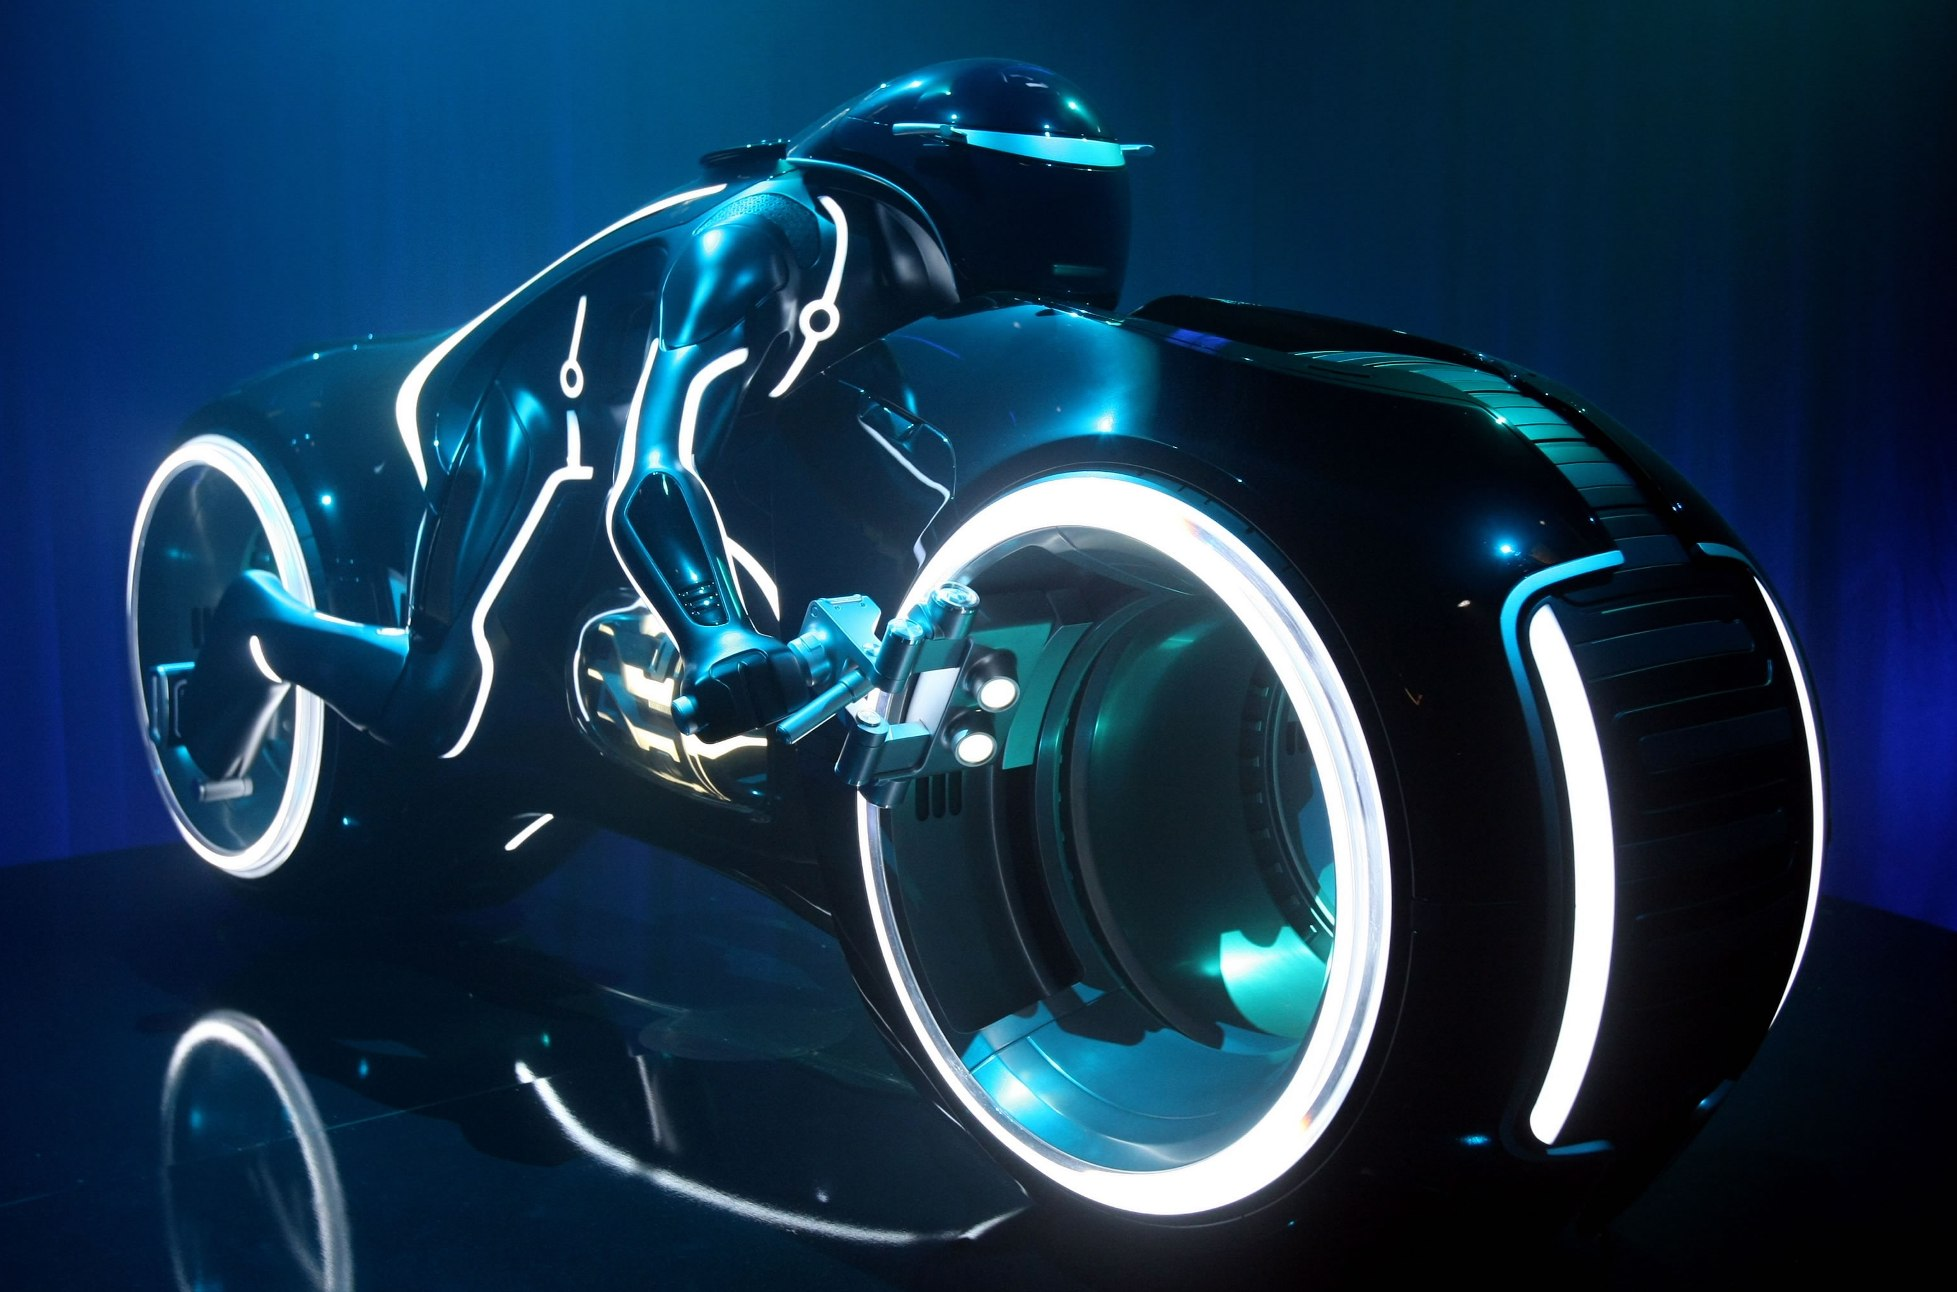 Tron Lightcycle sold at auction for $77,000